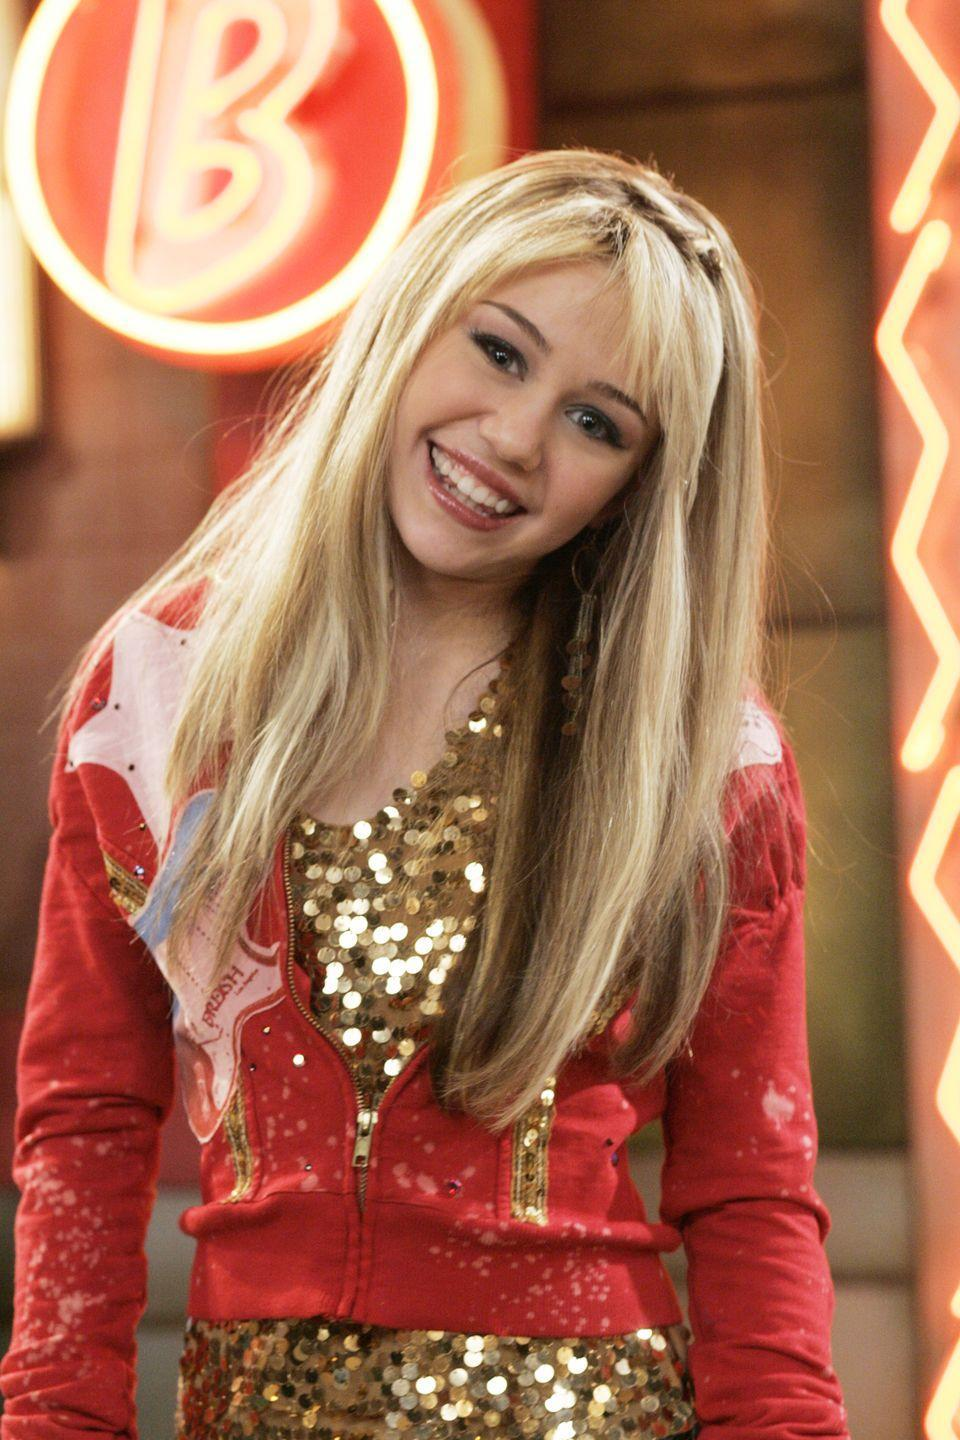 <p> As if you could forget the girl playing the title character herself. Miley Stewart was like every early 2000's teenage girl: obsessed with boys, lip gloss, and trying to sneak around behind her dad's back. Hannah Montana, though, was PEAK aspiration—her singing career, the flashy clothes, the hot guys she got to hang with on a daily basis (hello, Jonas Brothers!). She had it made. </p>